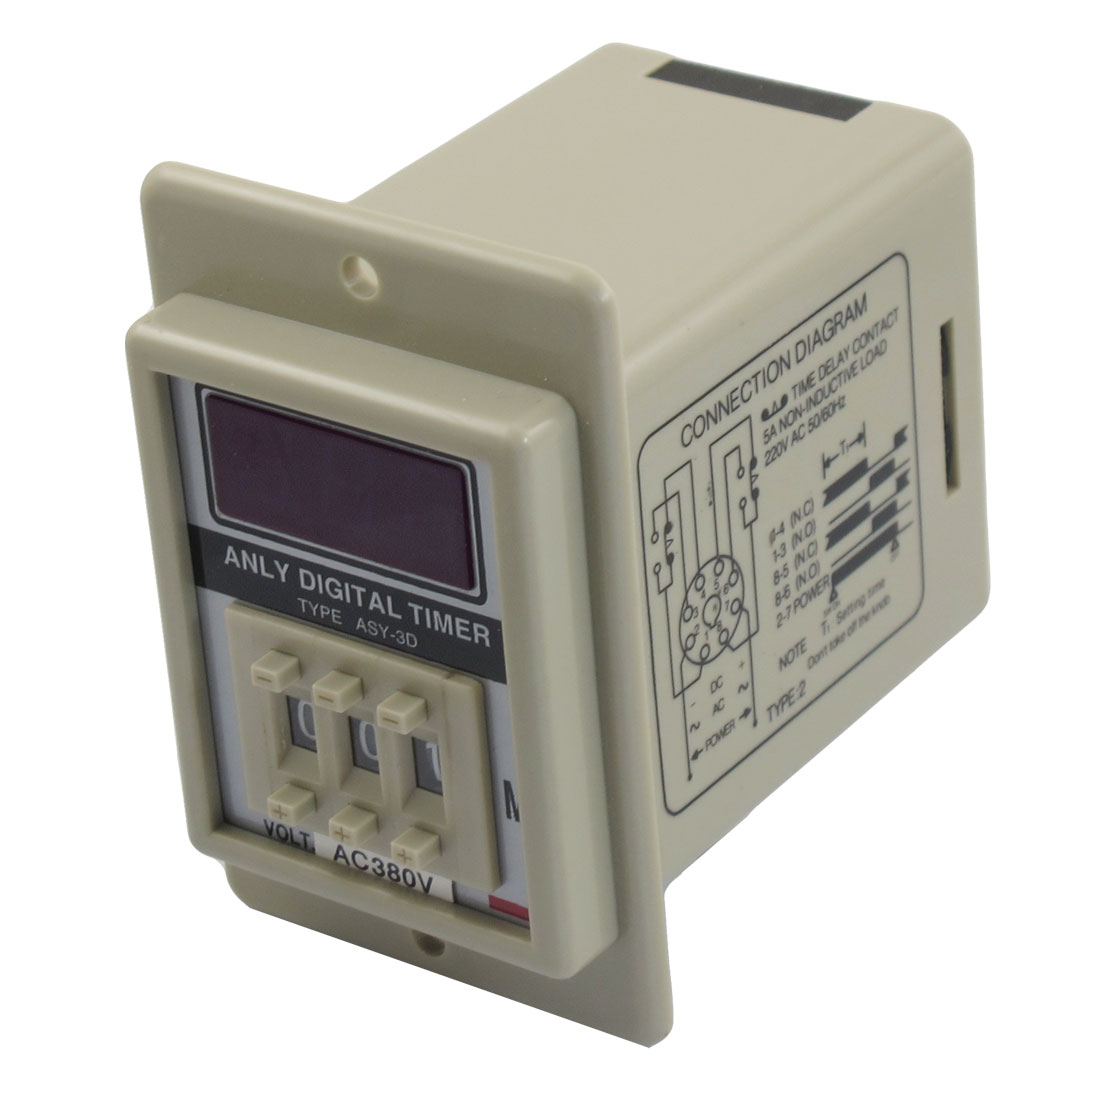 ASY-3D AC 380V 1M-999M Digital Timer Programmable Time Relay